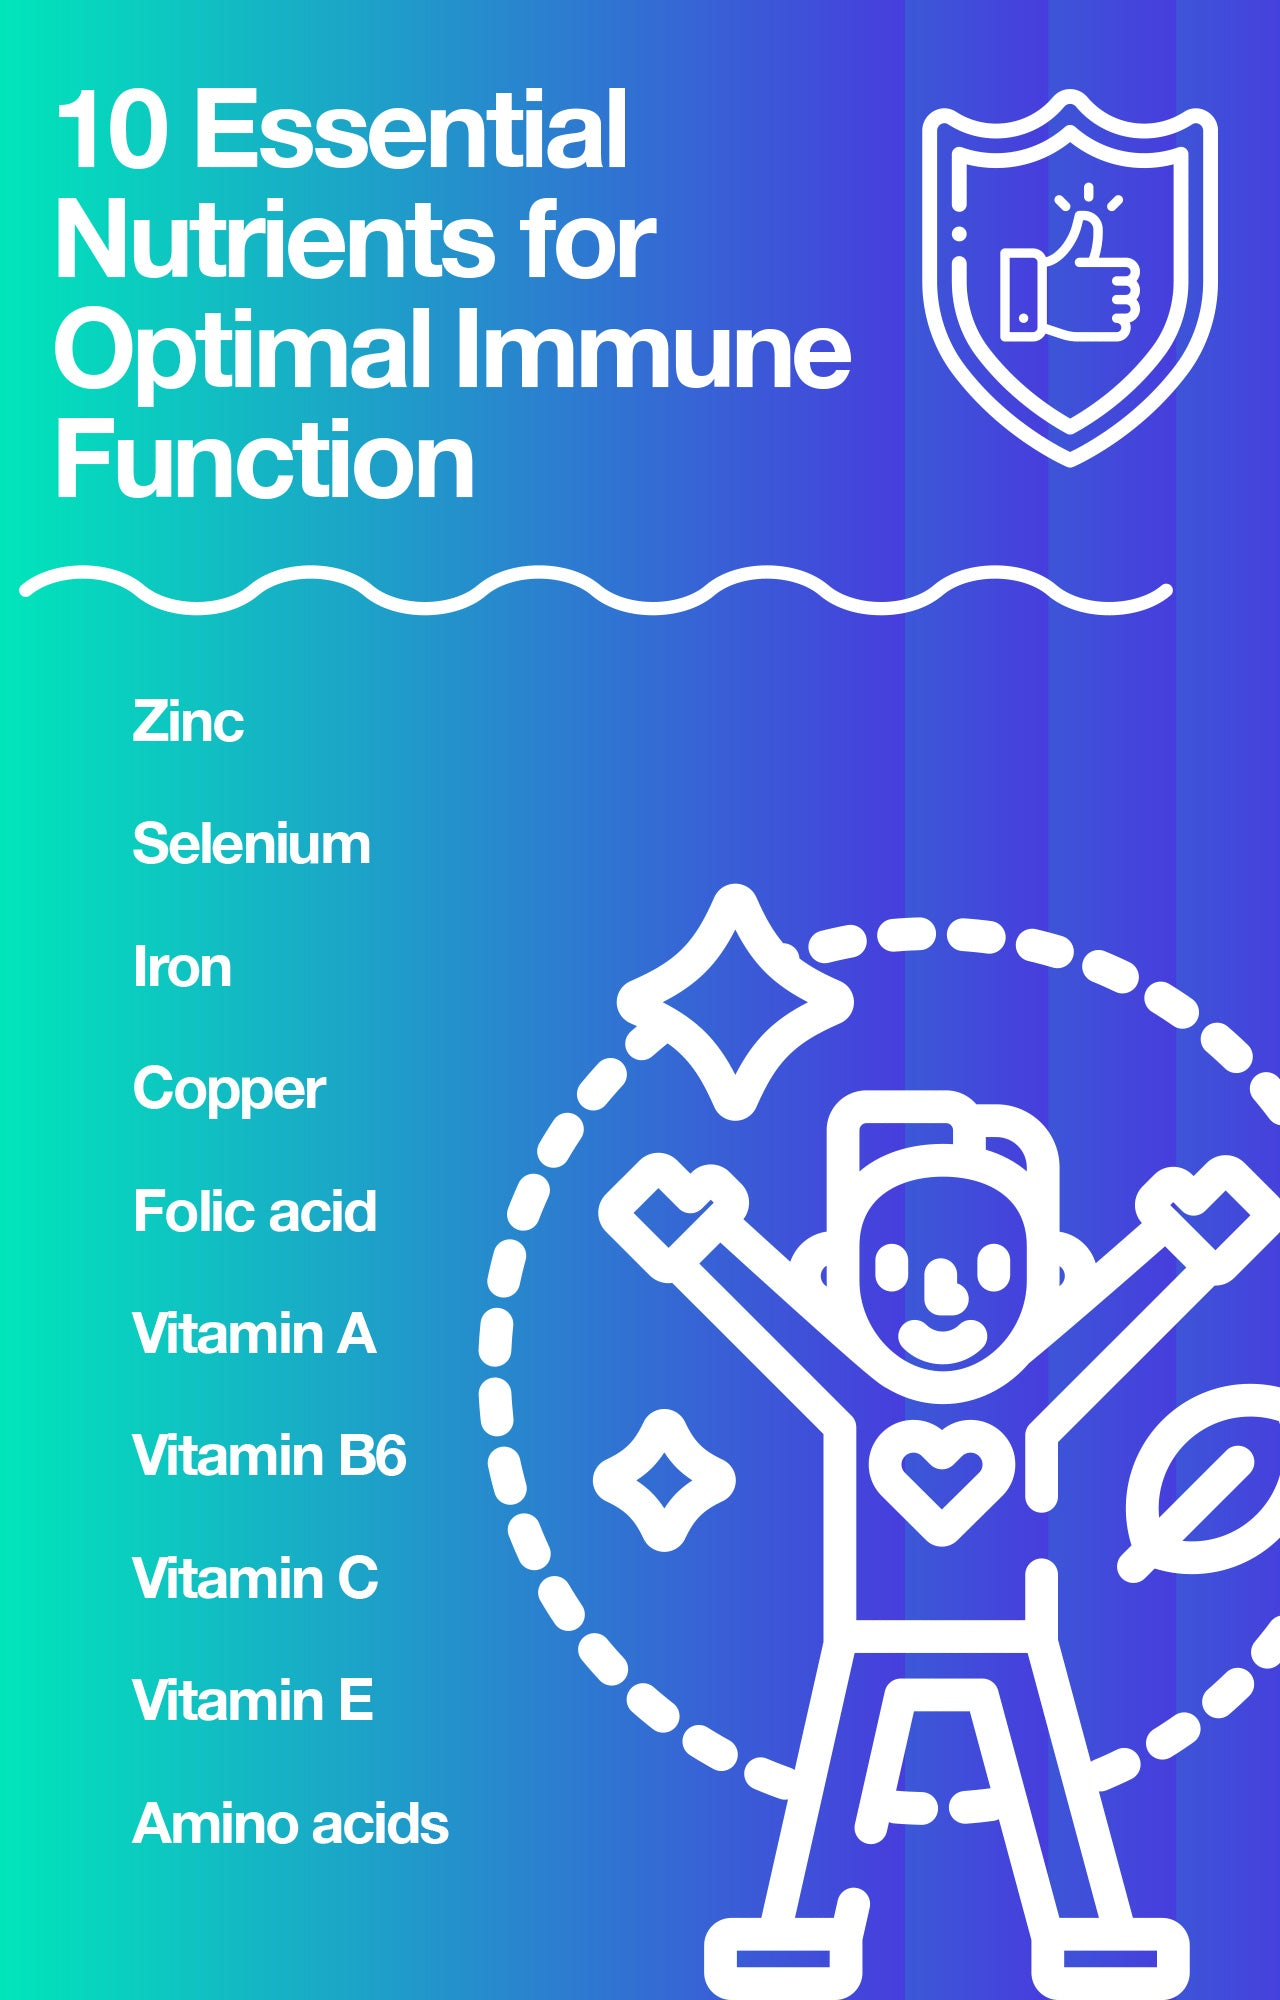 Essential nutrients for optimal immune system function